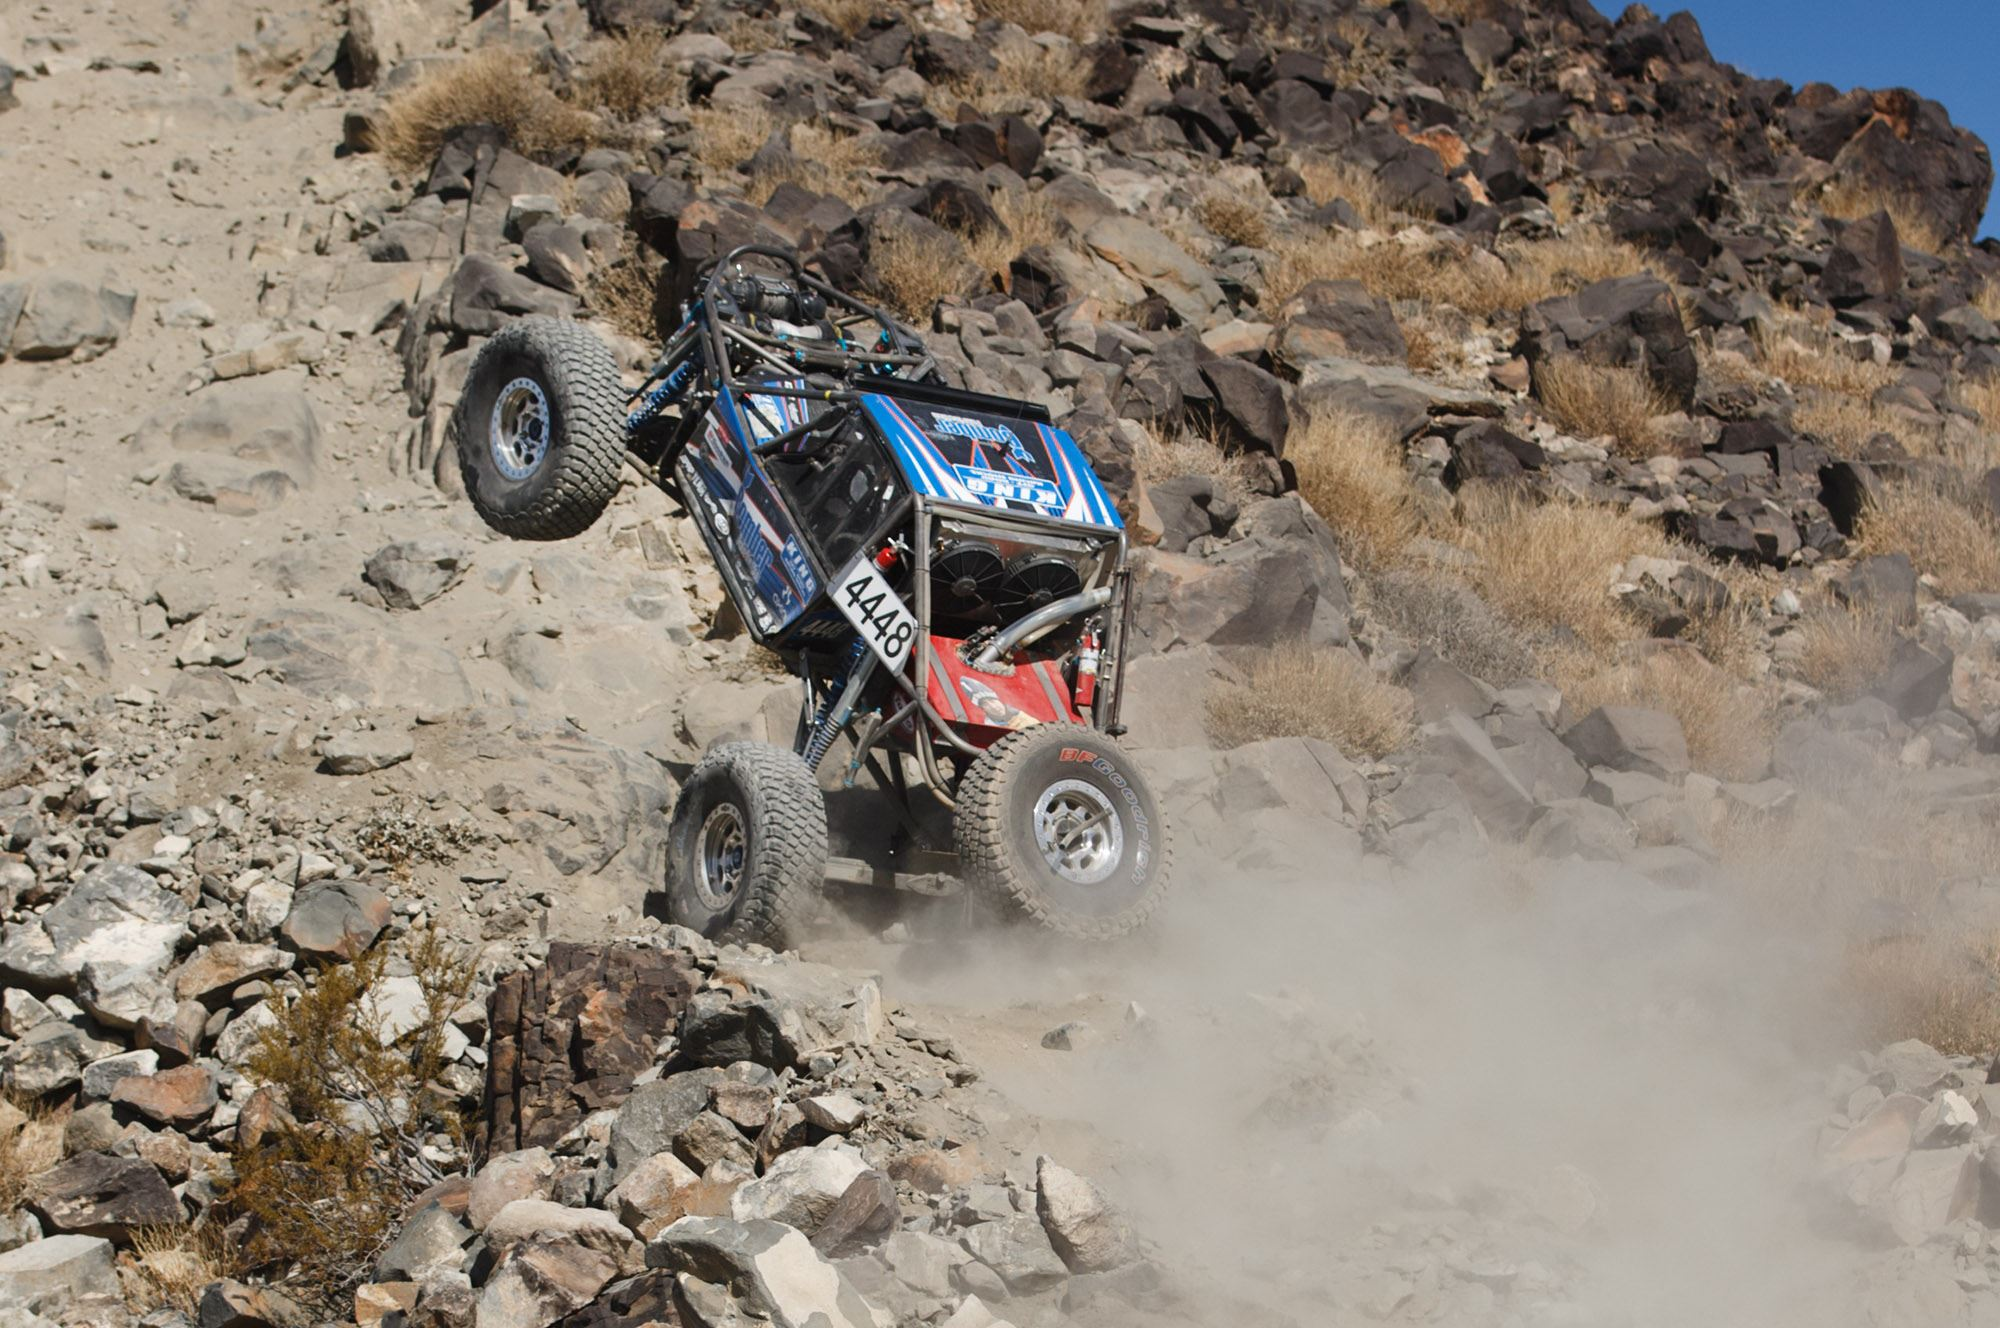 Randy Slawson Wins The World's Hardest One Day Off-Road Race & Takes Home His Third Crown